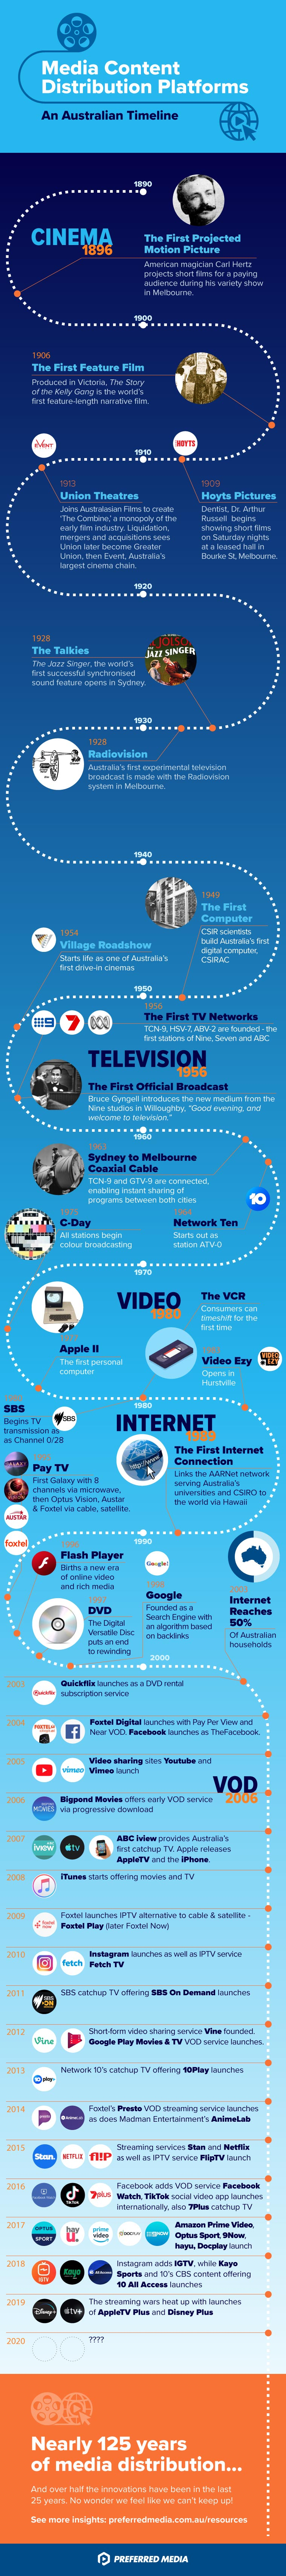 Infographic-media-distribution-channels-and-platforms-Australia